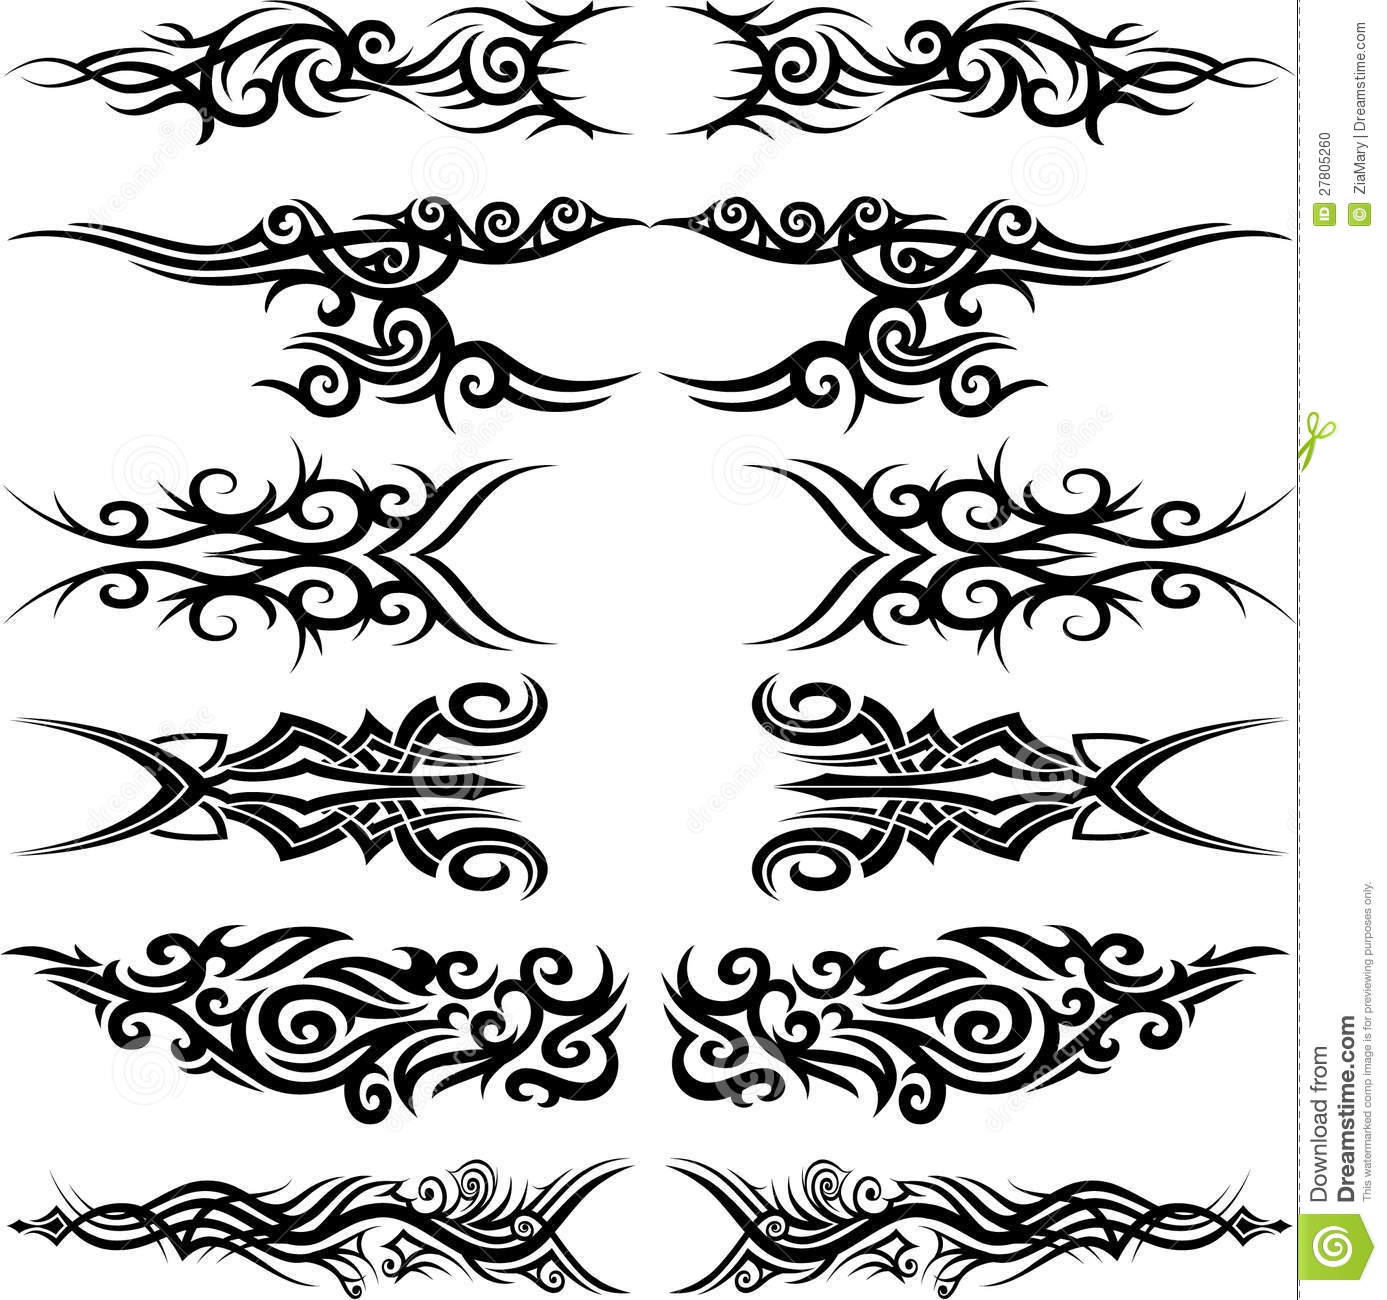 tatouage tribal maori photo stock image 27805260. Black Bedroom Furniture Sets. Home Design Ideas